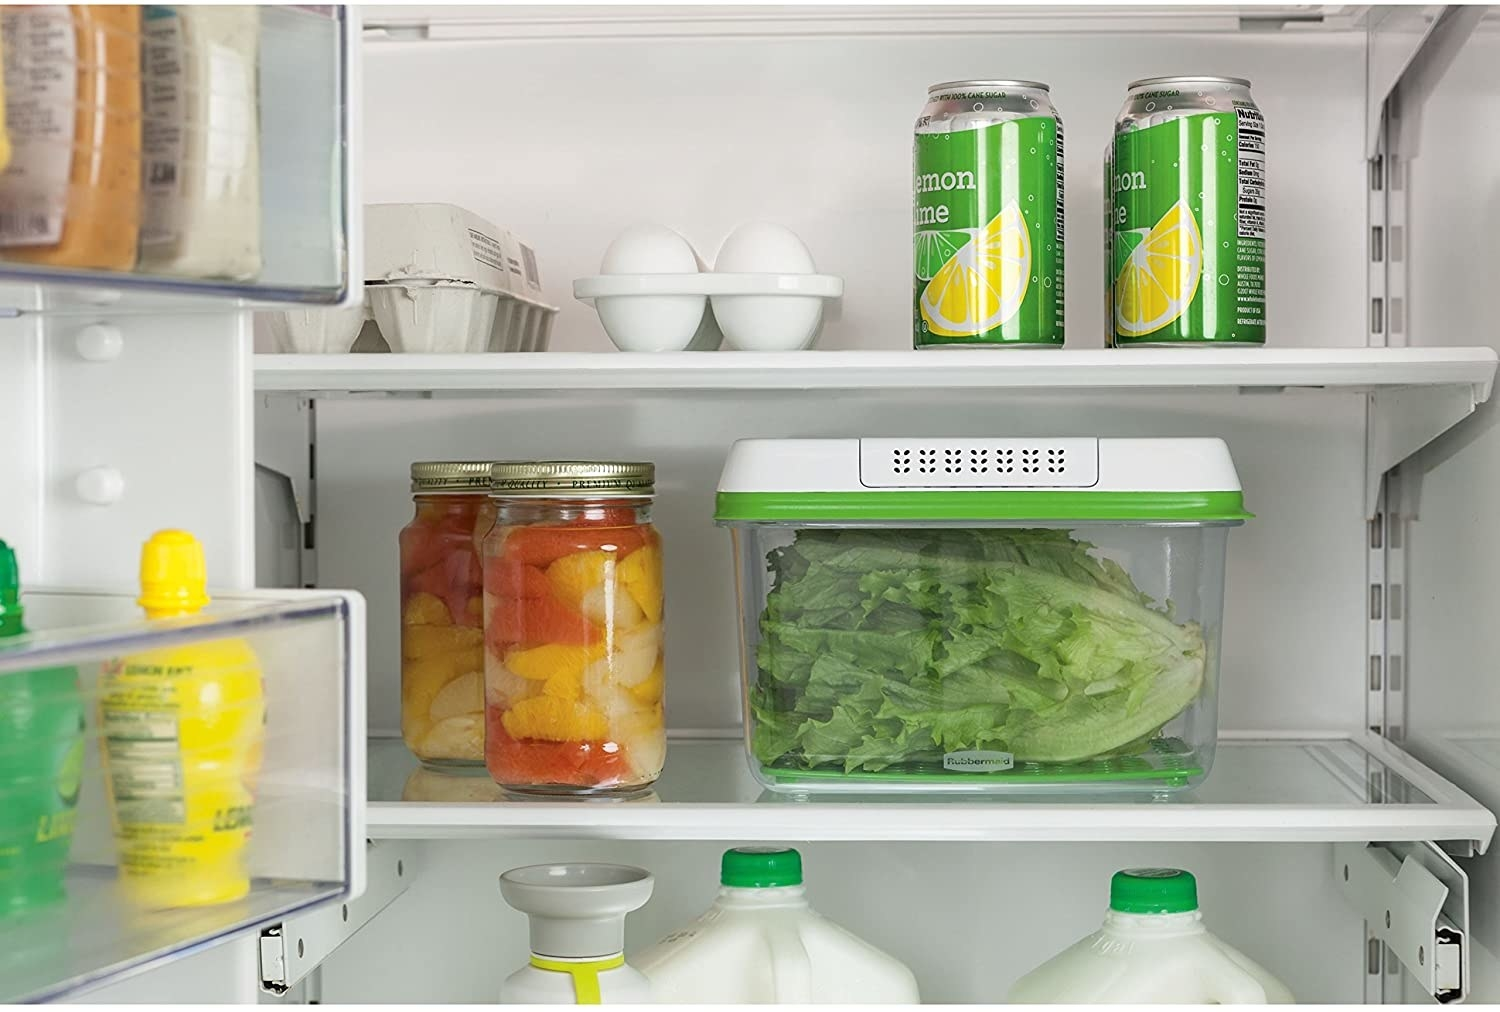 The produce saving box inside a fridge; it is filled with fresh lettuce